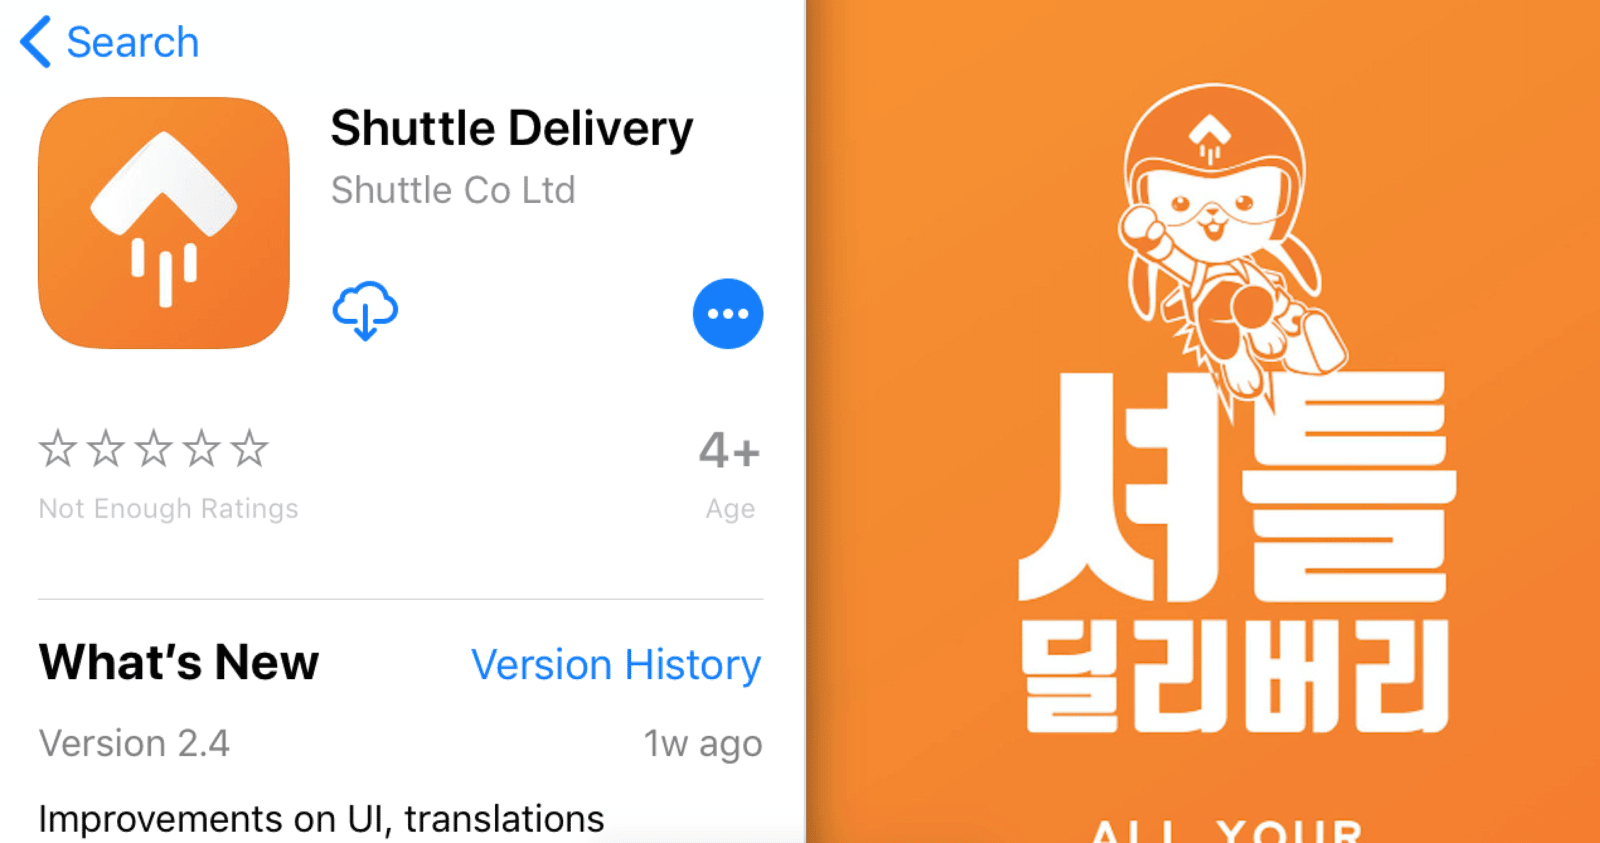 shuttle delivery app